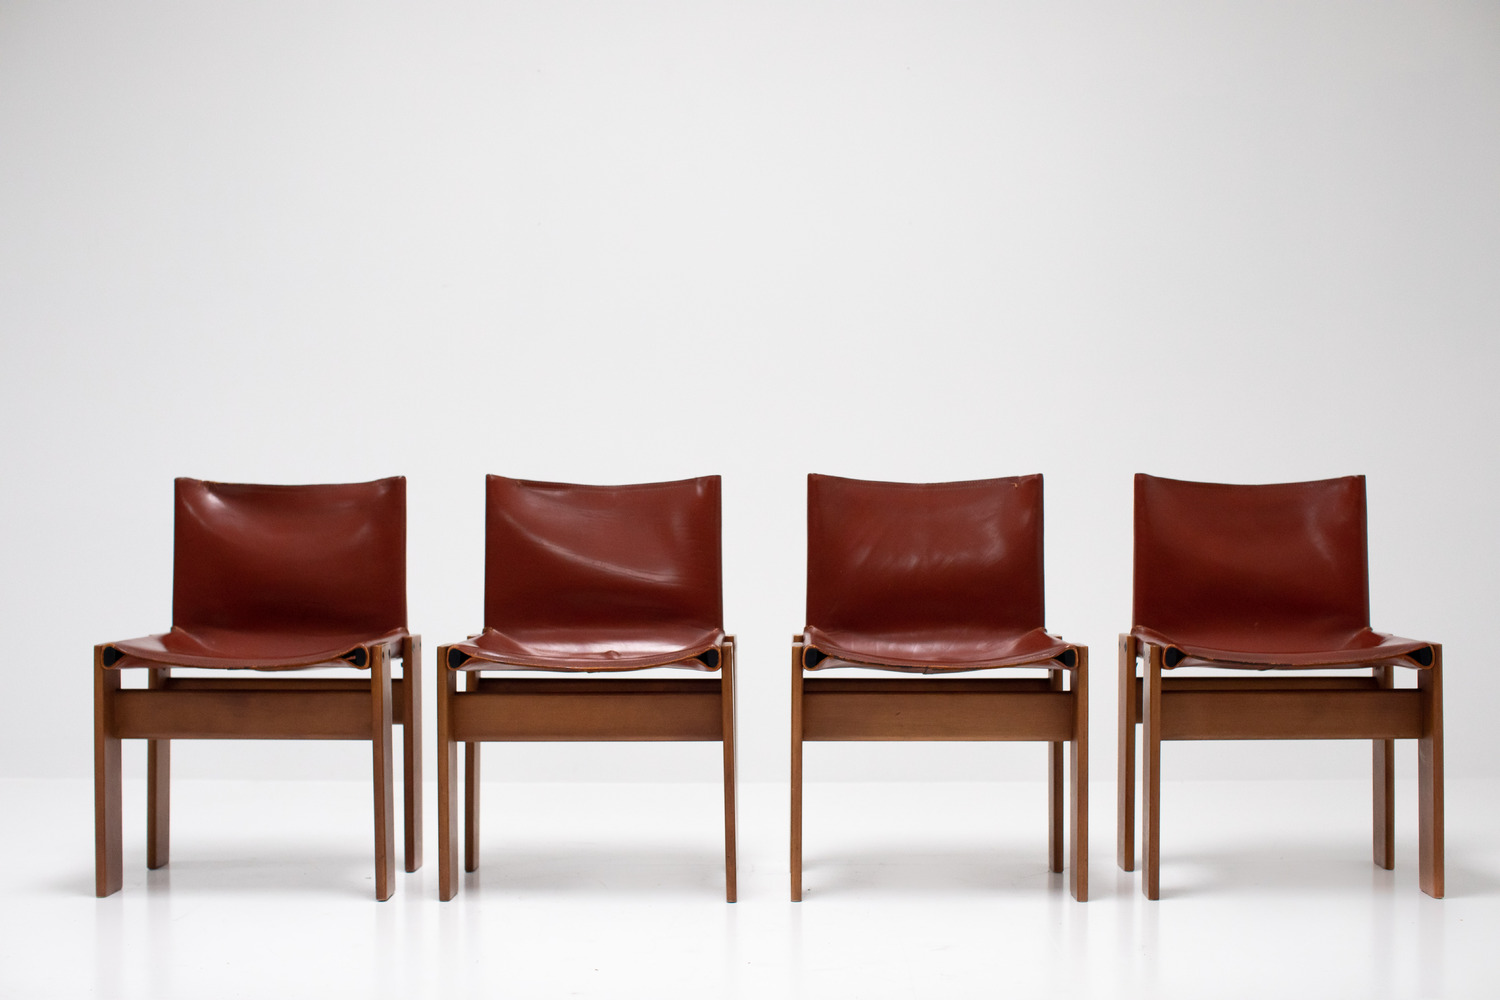 Monk chairs